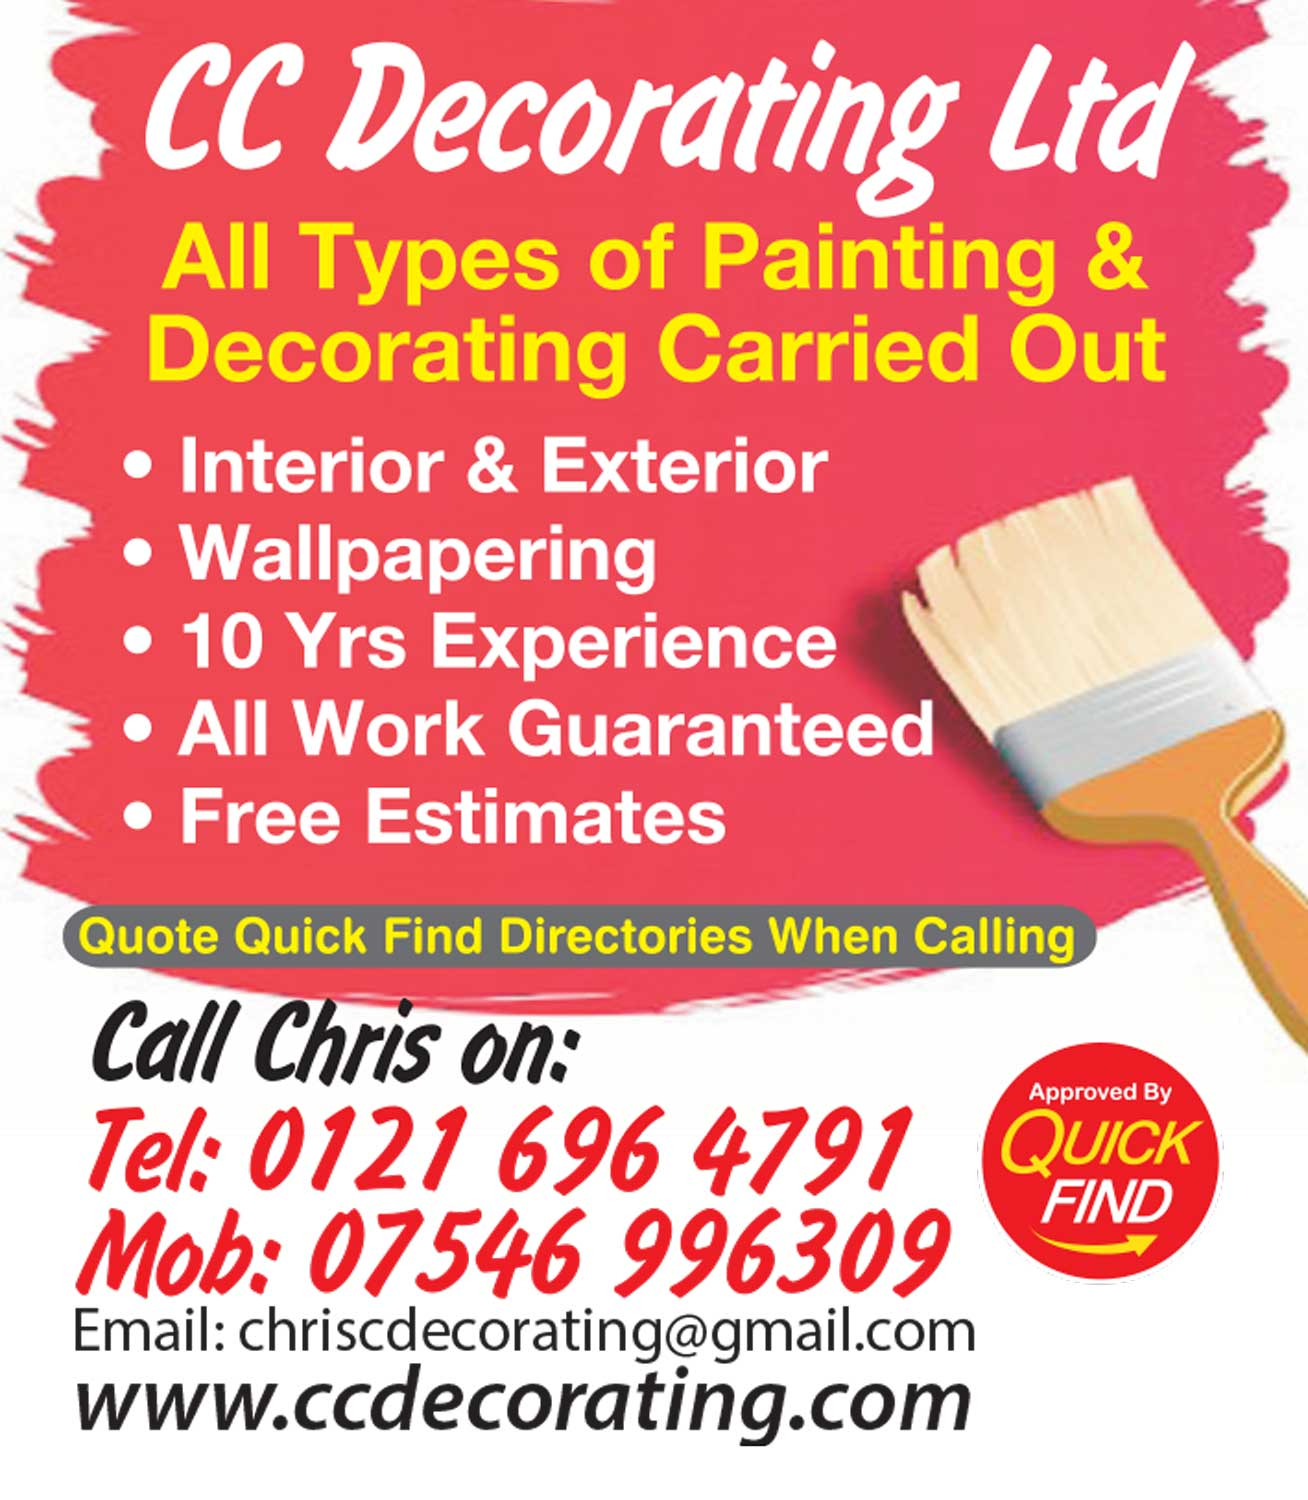 CC Decorating Ltd